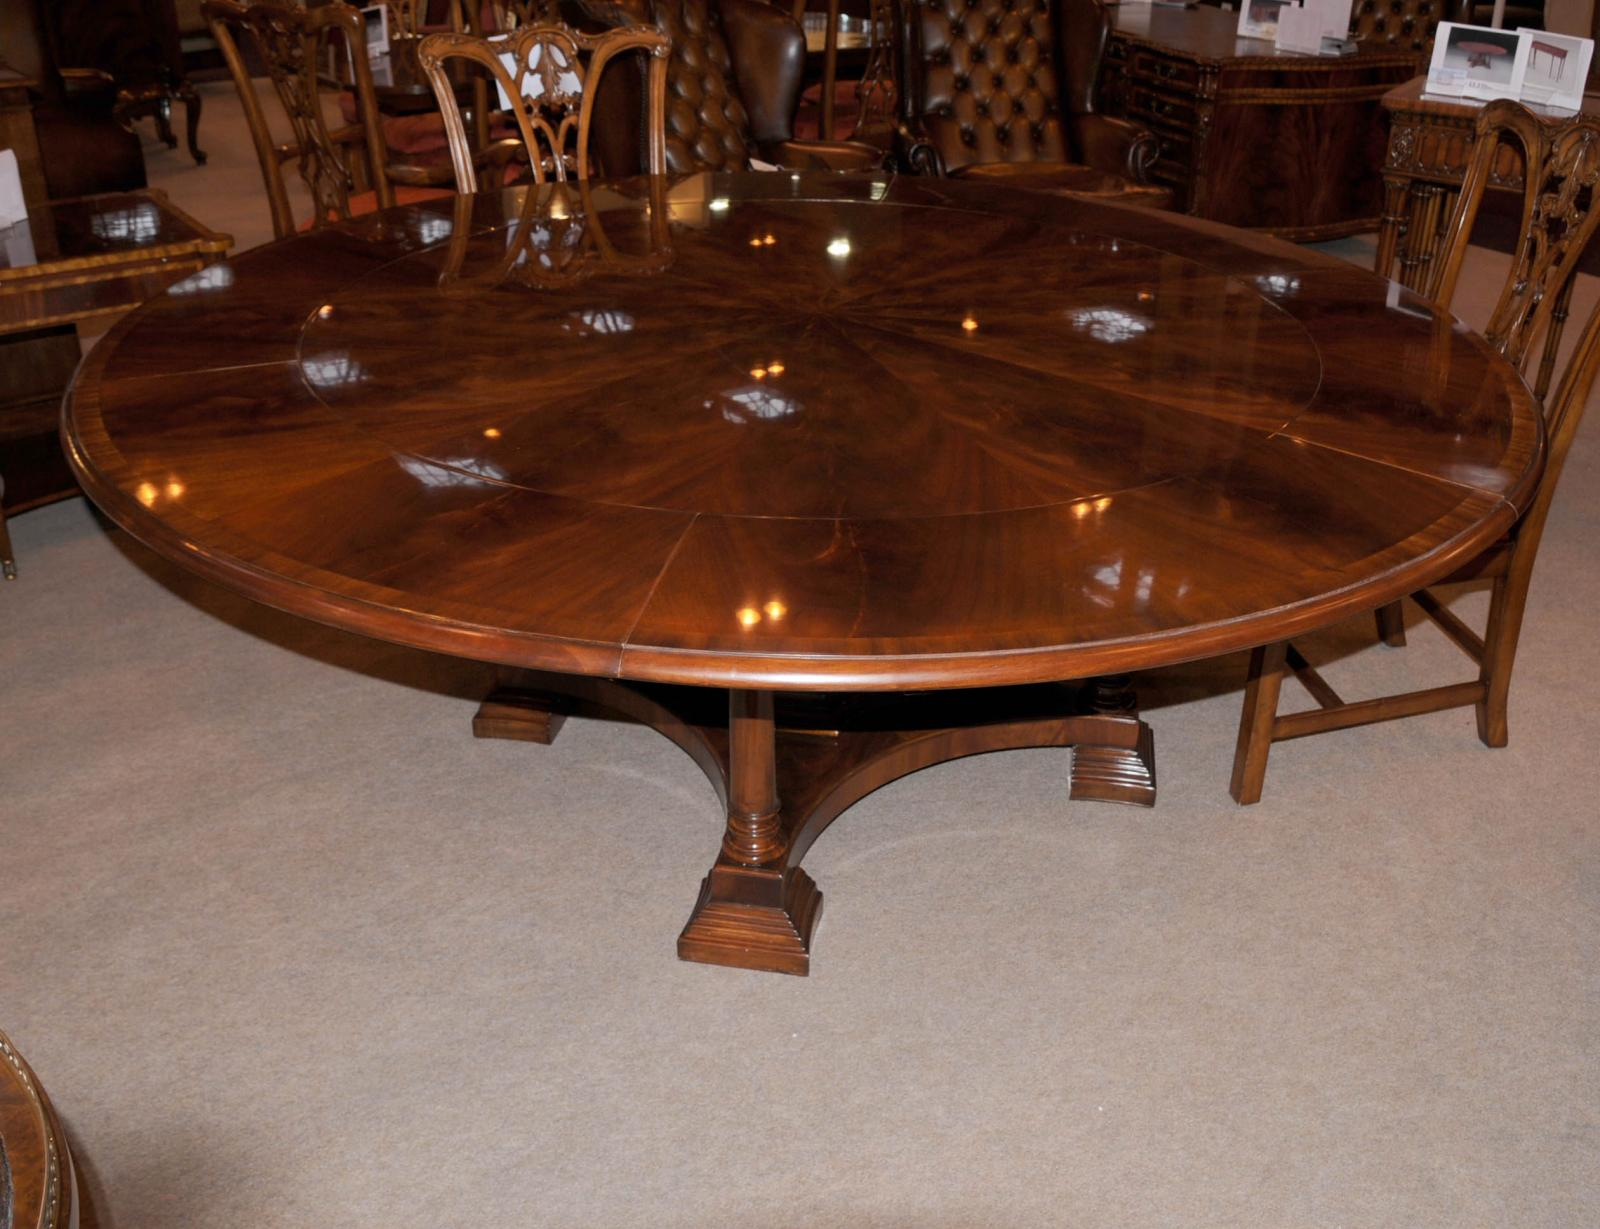 https://canonburyantiques.com/products_img/Regency%20Extending%20Jupe%20Round%20Dining%20Table%20Centre%20Tables-1366607606-zoom-86.jpg